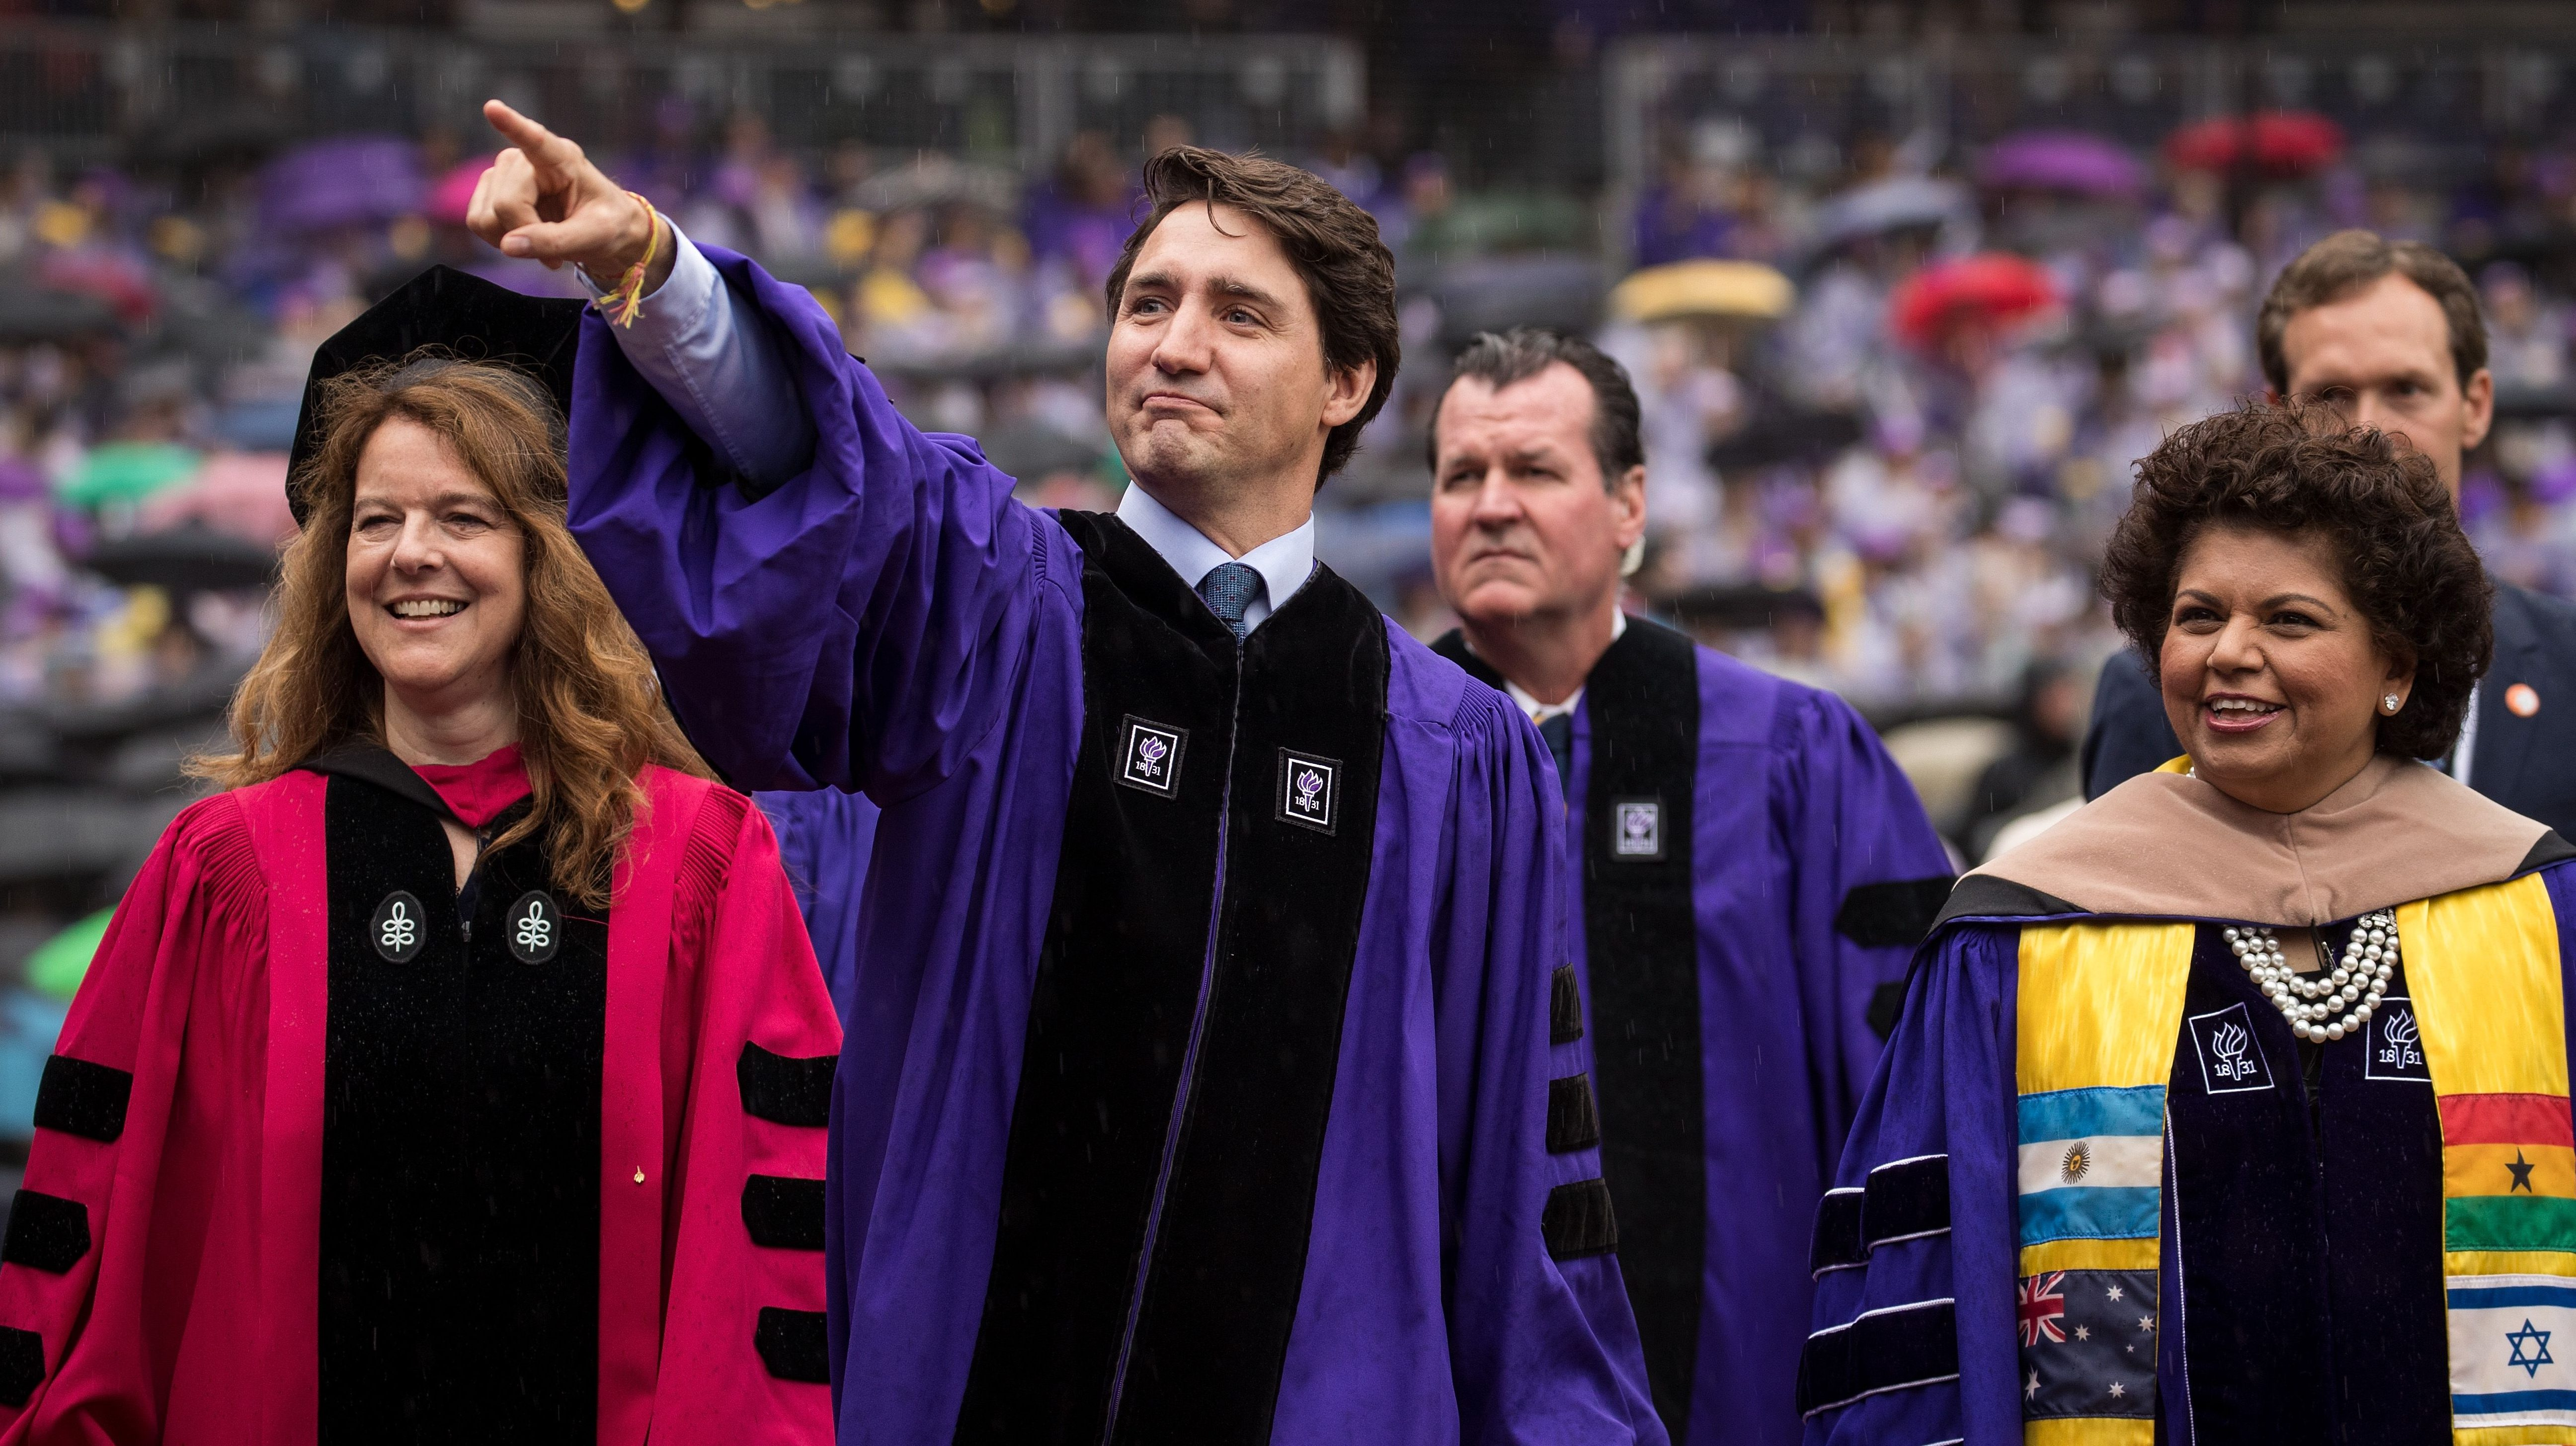 Canadian Prime Minister Justin Trudeau gestures as he arrives for New York University's commencement ceremony at Yankee Stadium, on May 16, 2018 in the Bronx borough of New York City.